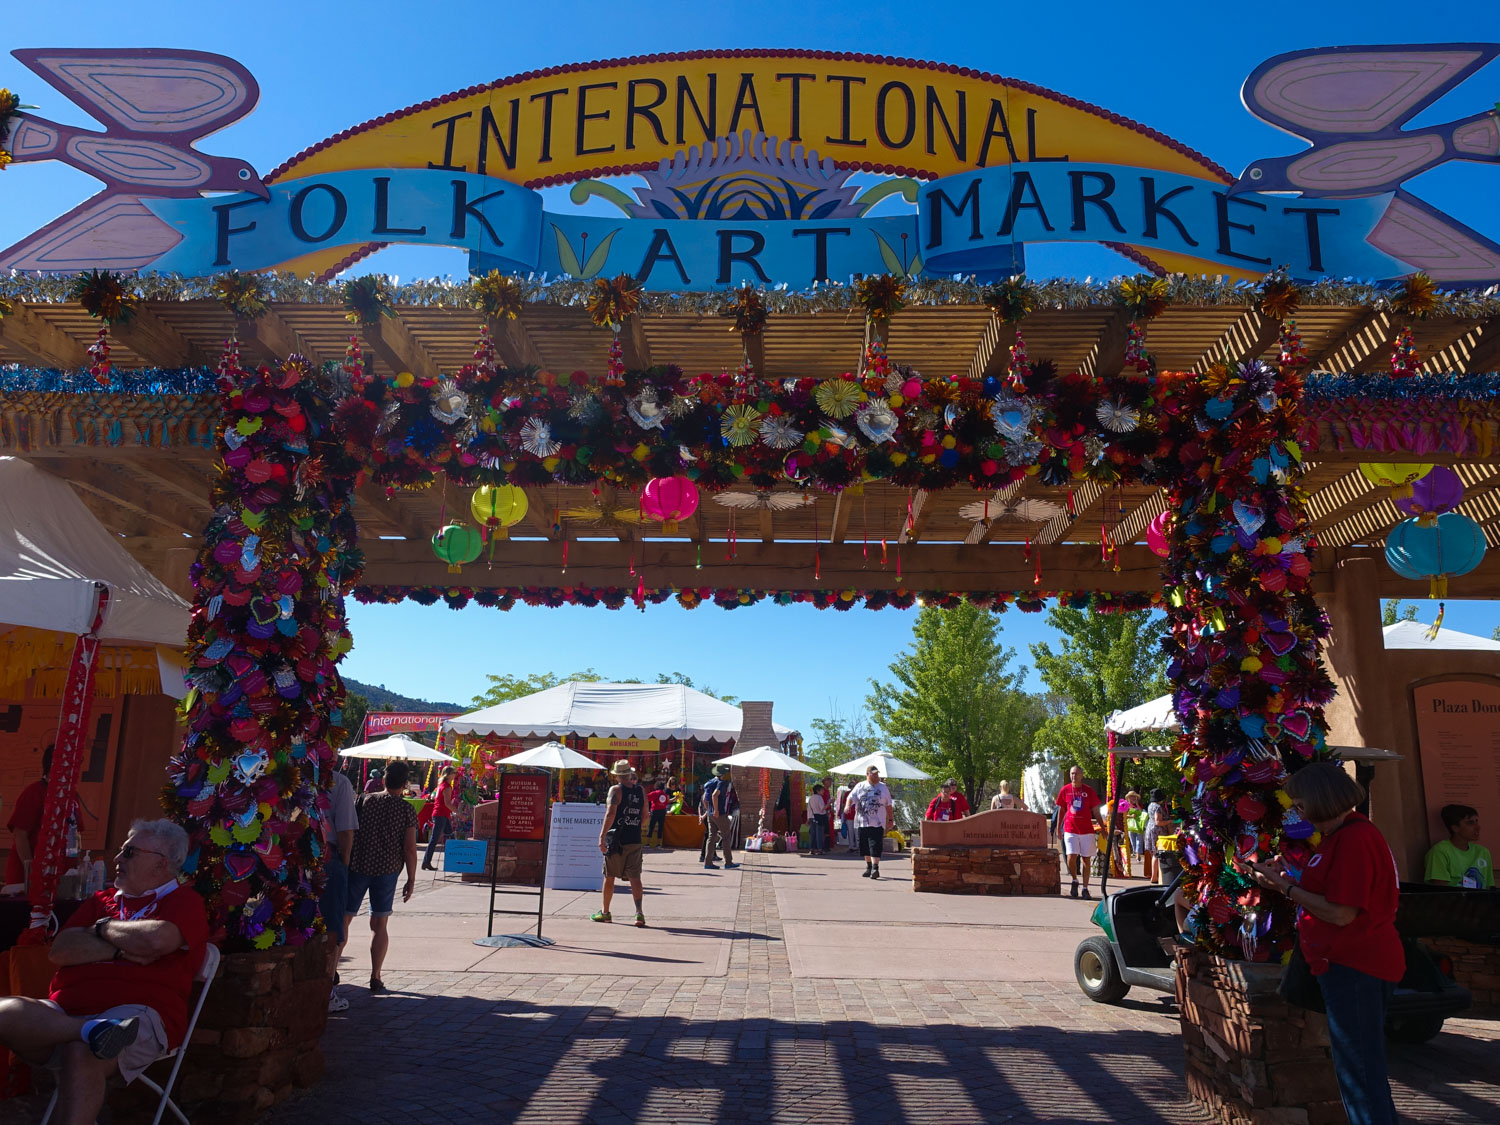 International Folk Art Market 2018